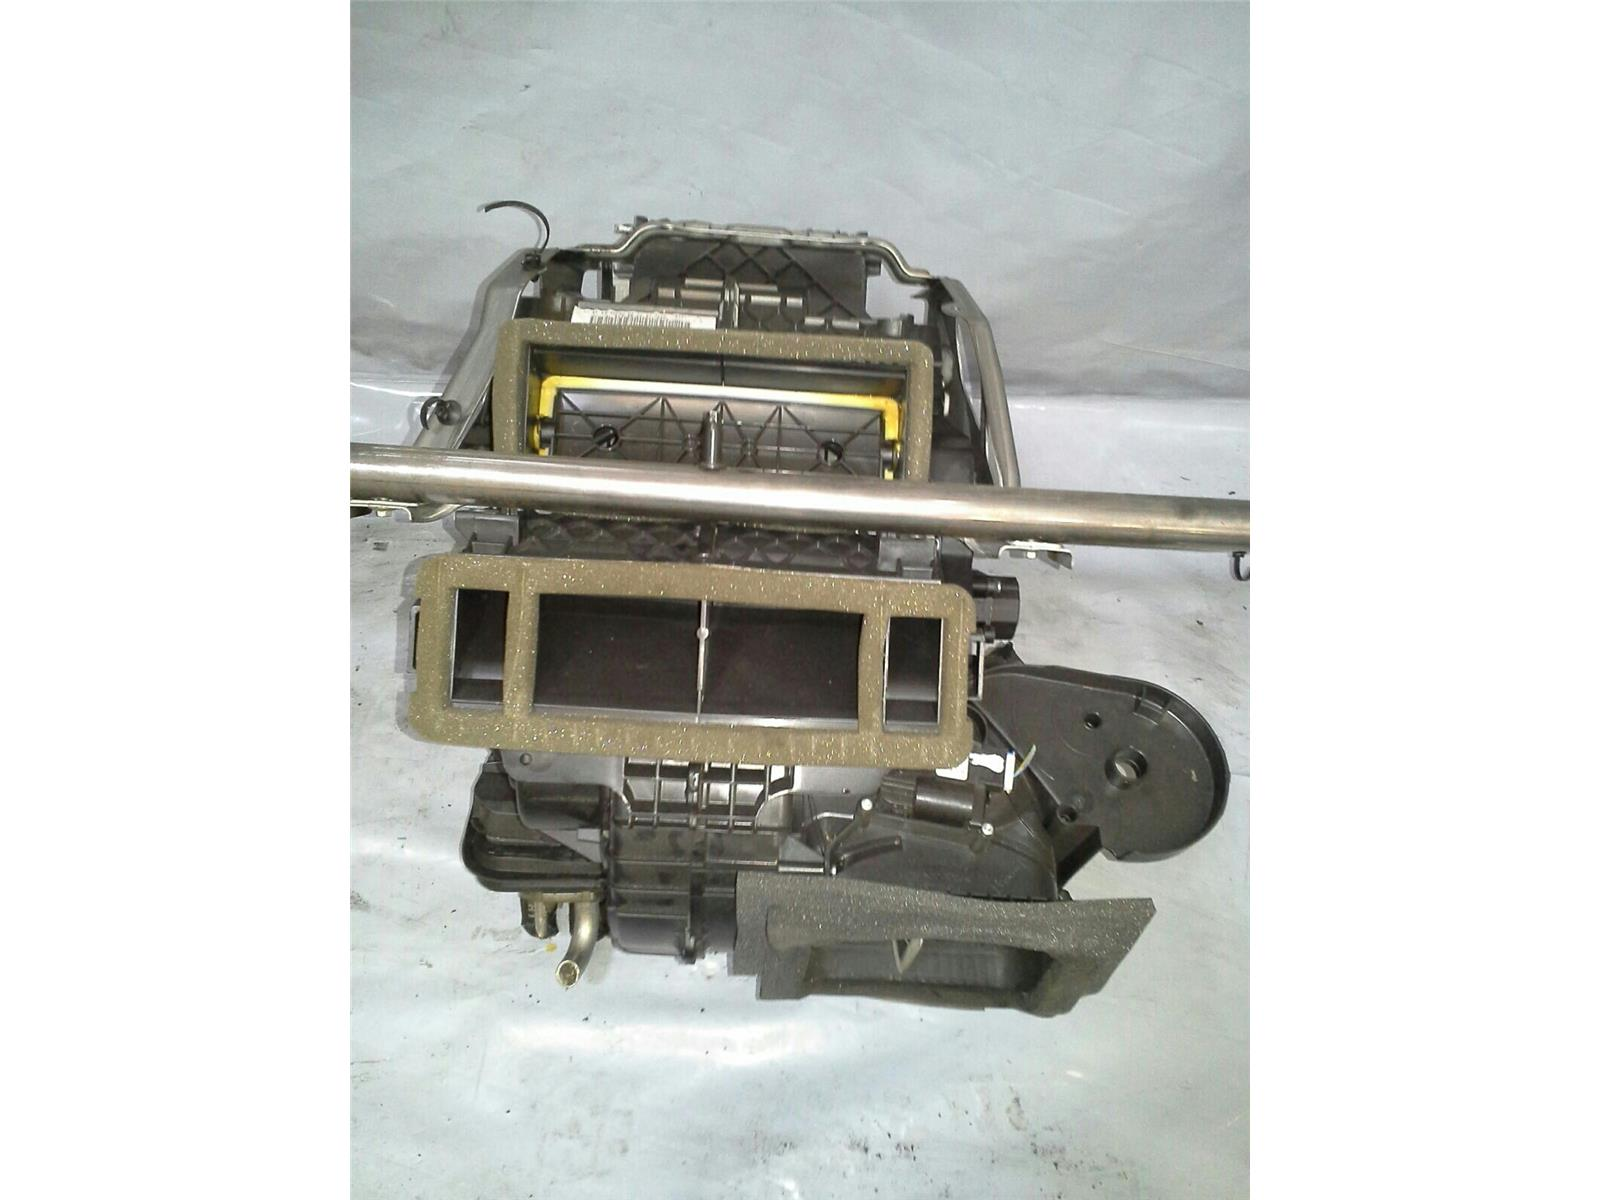 Ford Focus 2011 To 2014 Heater Unit Diesel Manual For Sale From Frame Matrix Blower And 5158613